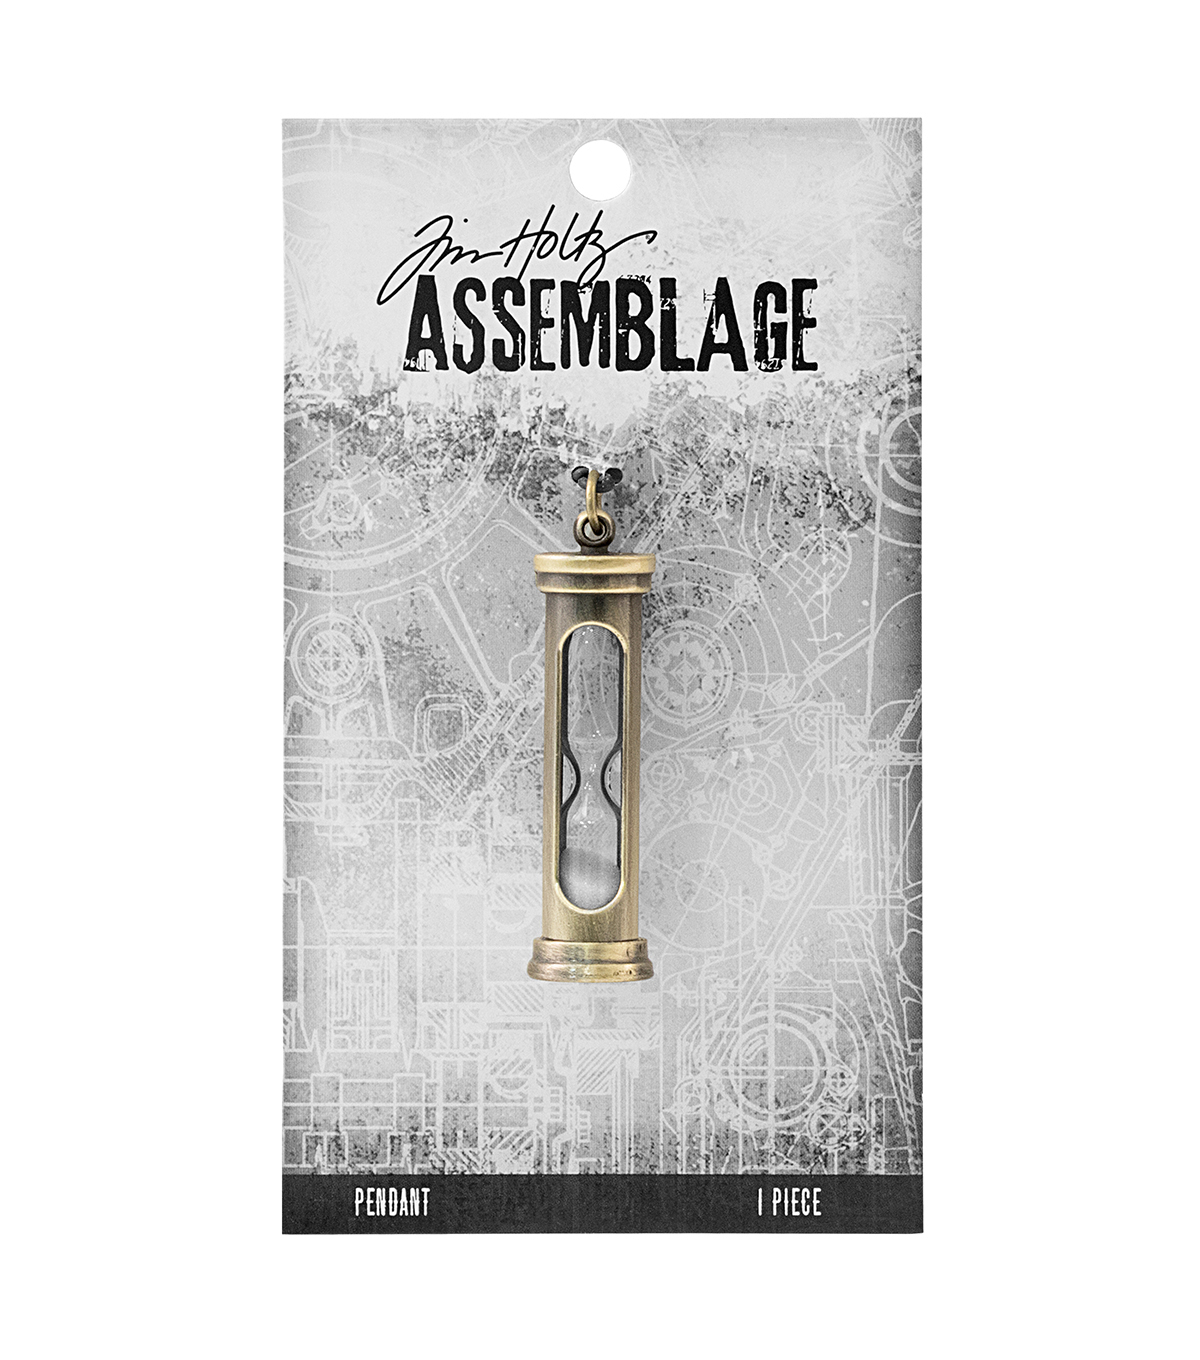 Tim Holtz Assemblage Hourglass Pendant